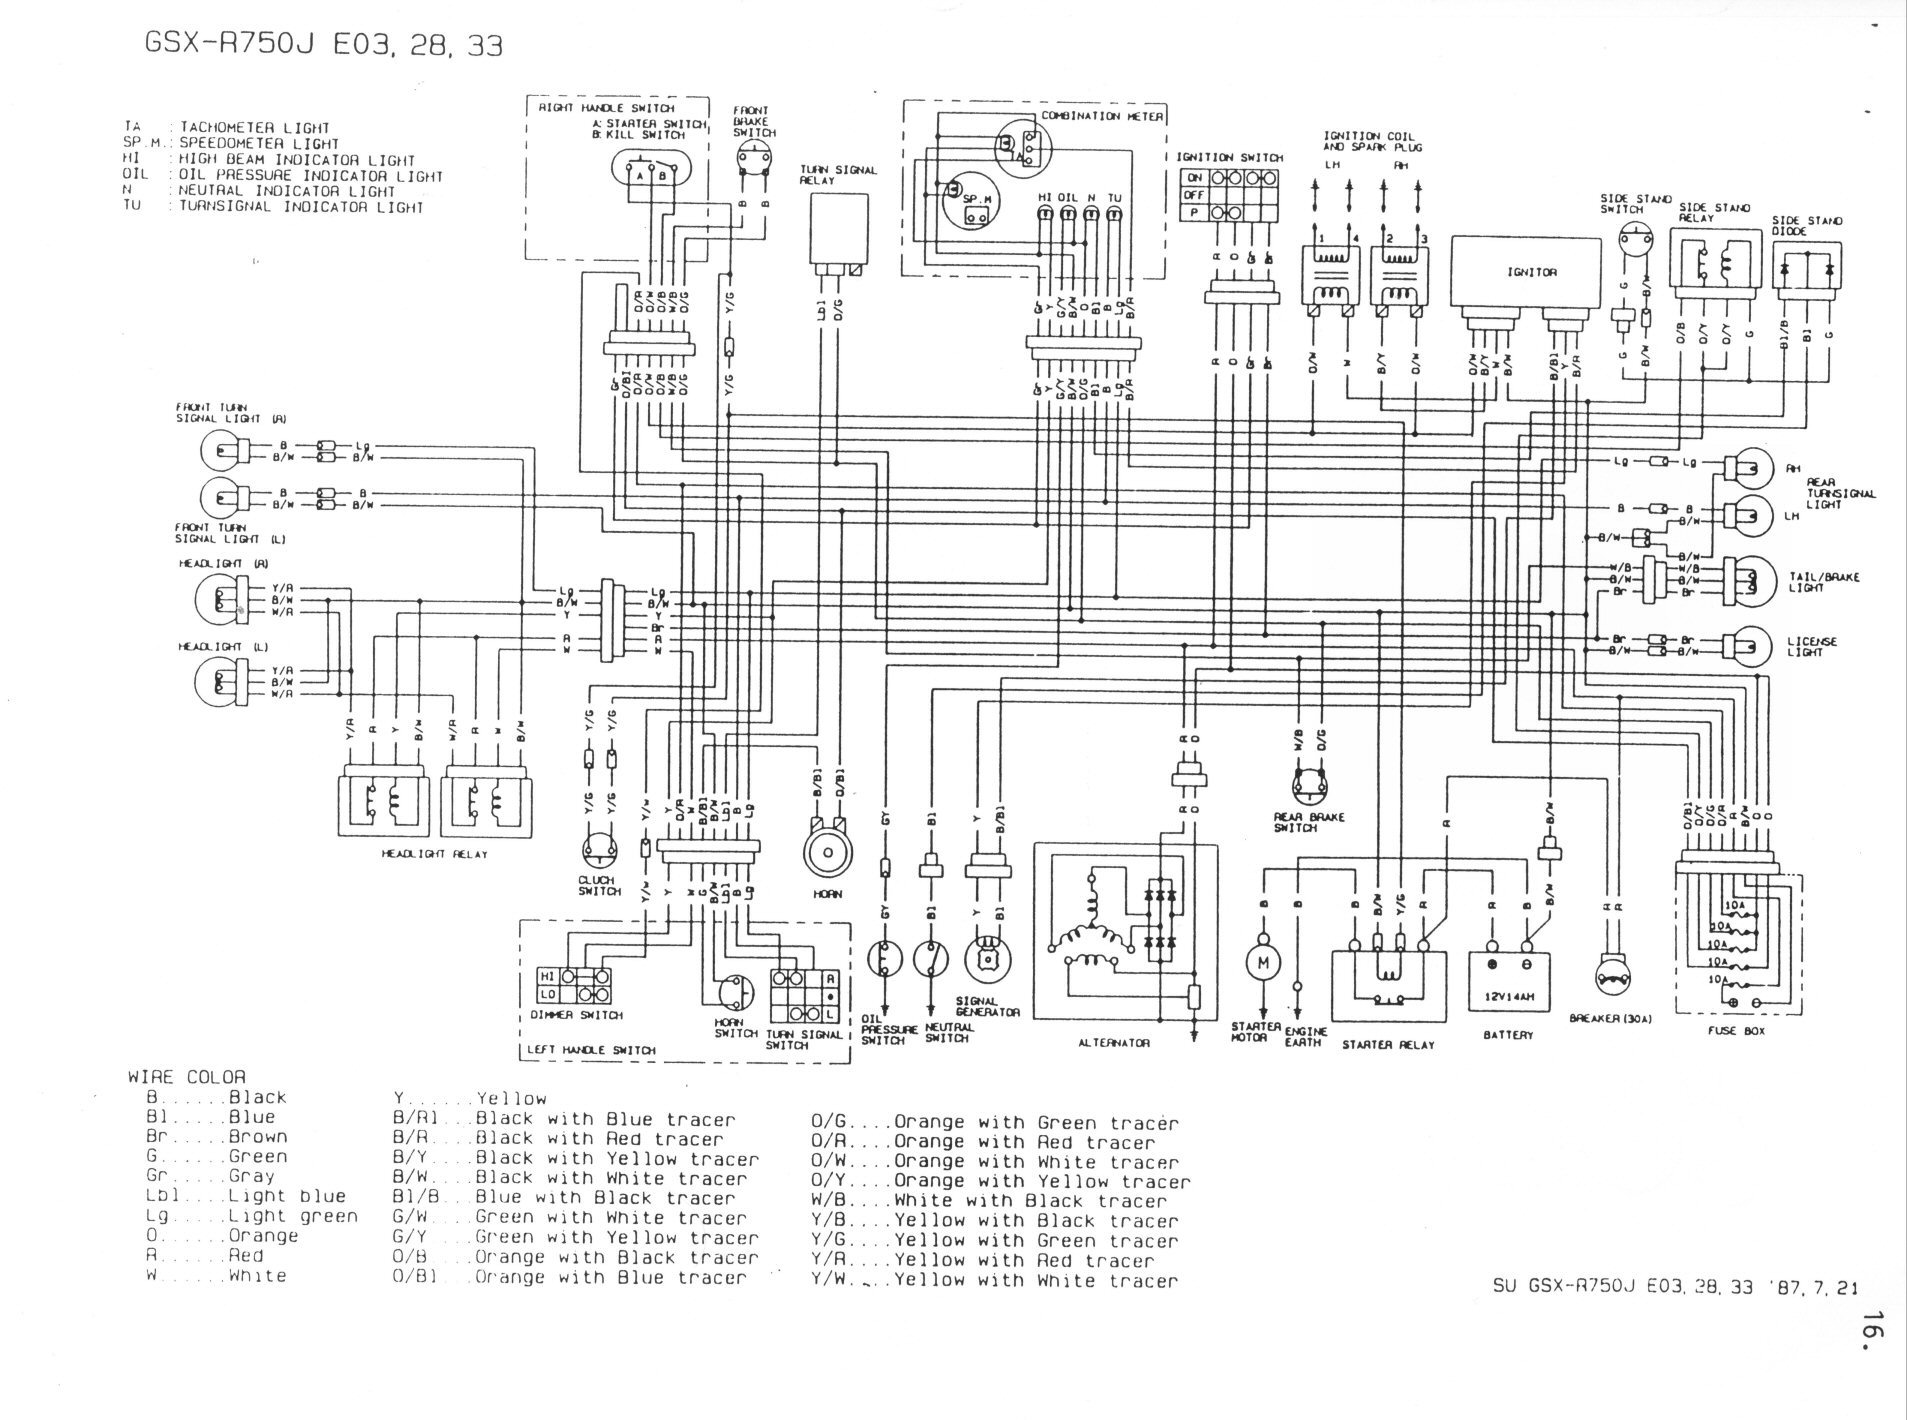 91 Gsxr 750 Wiring Diagram